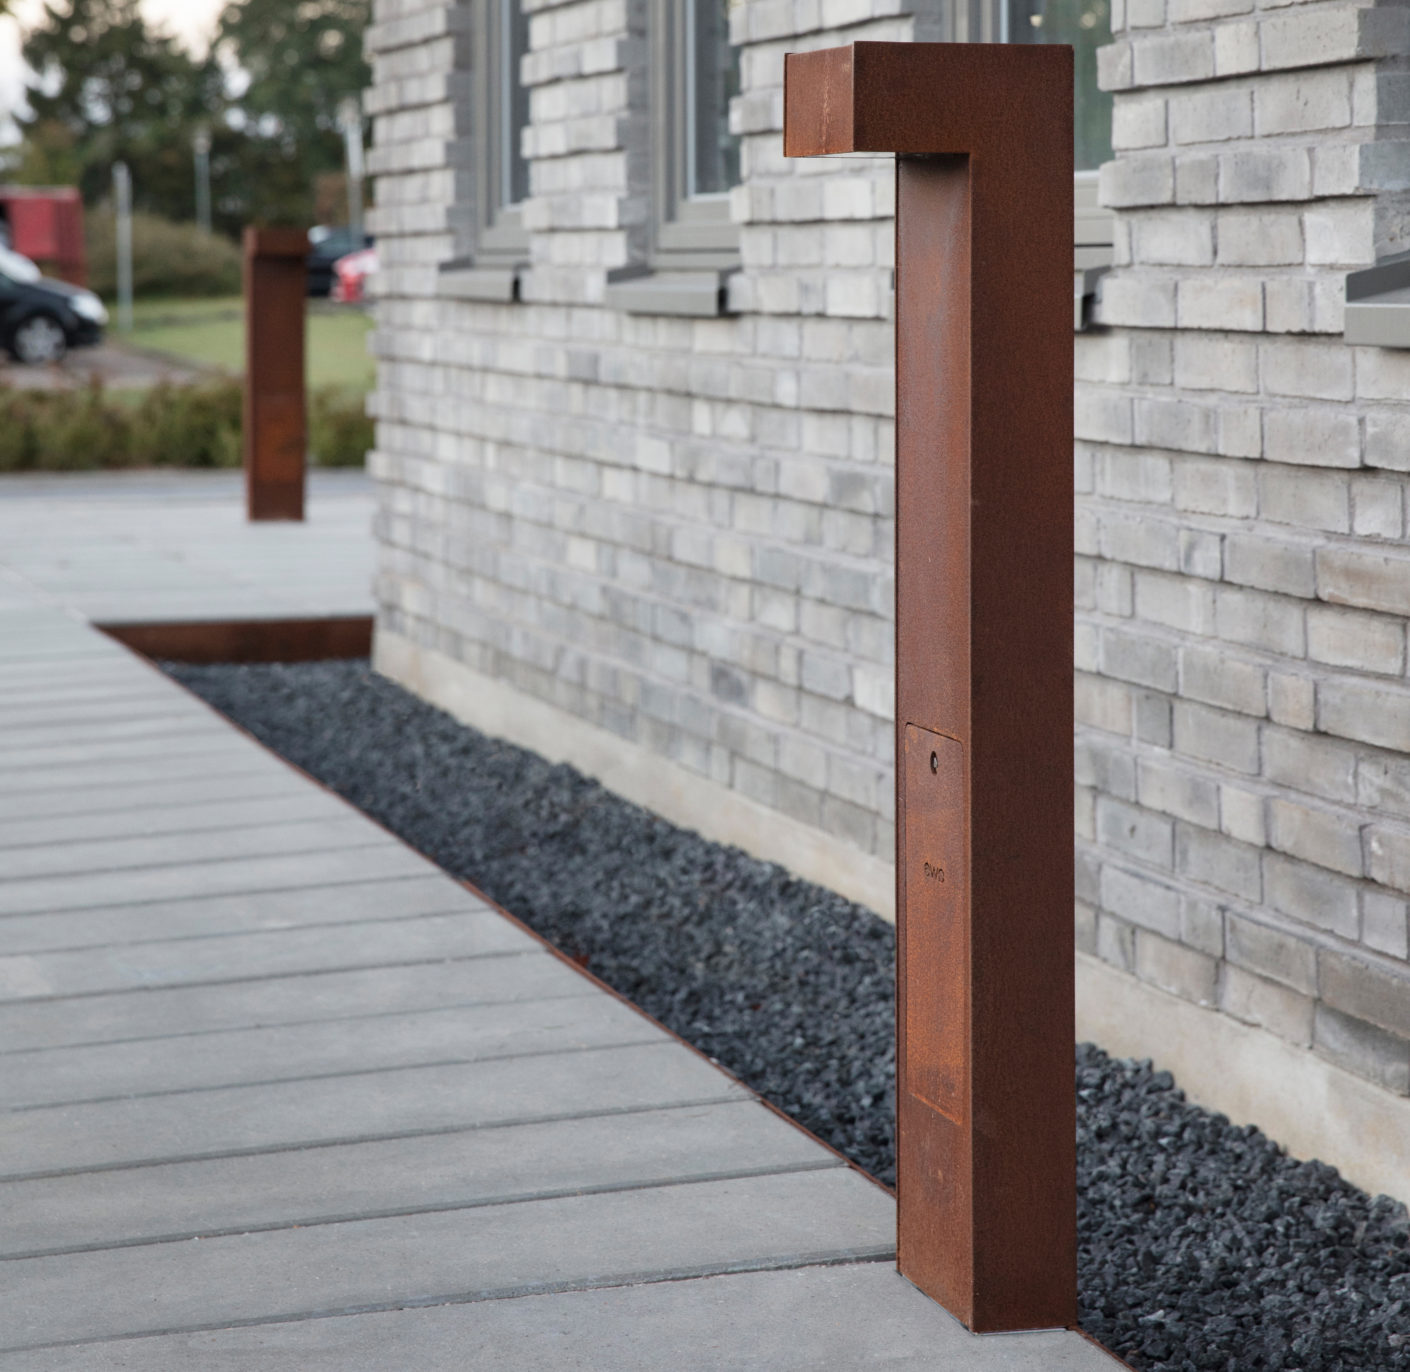 A corrosion-resistant insulating layer makes the COR-TEN steel ewo bollard lights suitable for outside use.